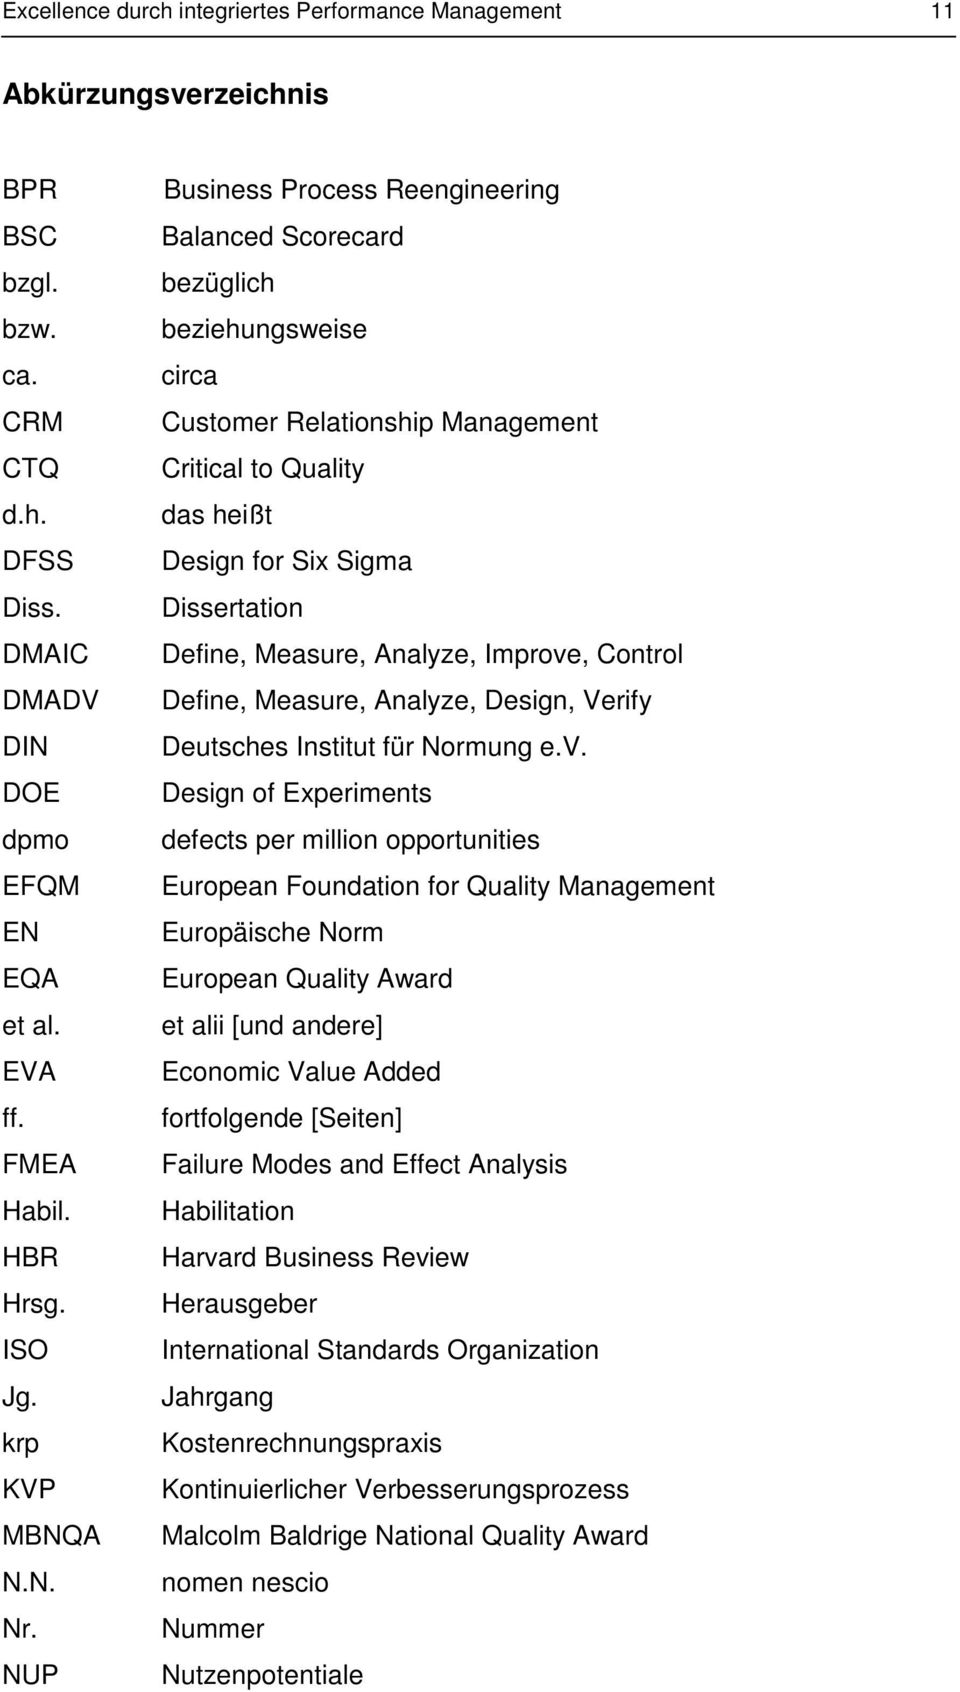 NUP Business Process Reengineering Balanced Scorecard bezüglich beziehungsweise circa Customer Relationship Management Critical to Quality das heißt Design for Si Sigma Dissertation Define, Measure,